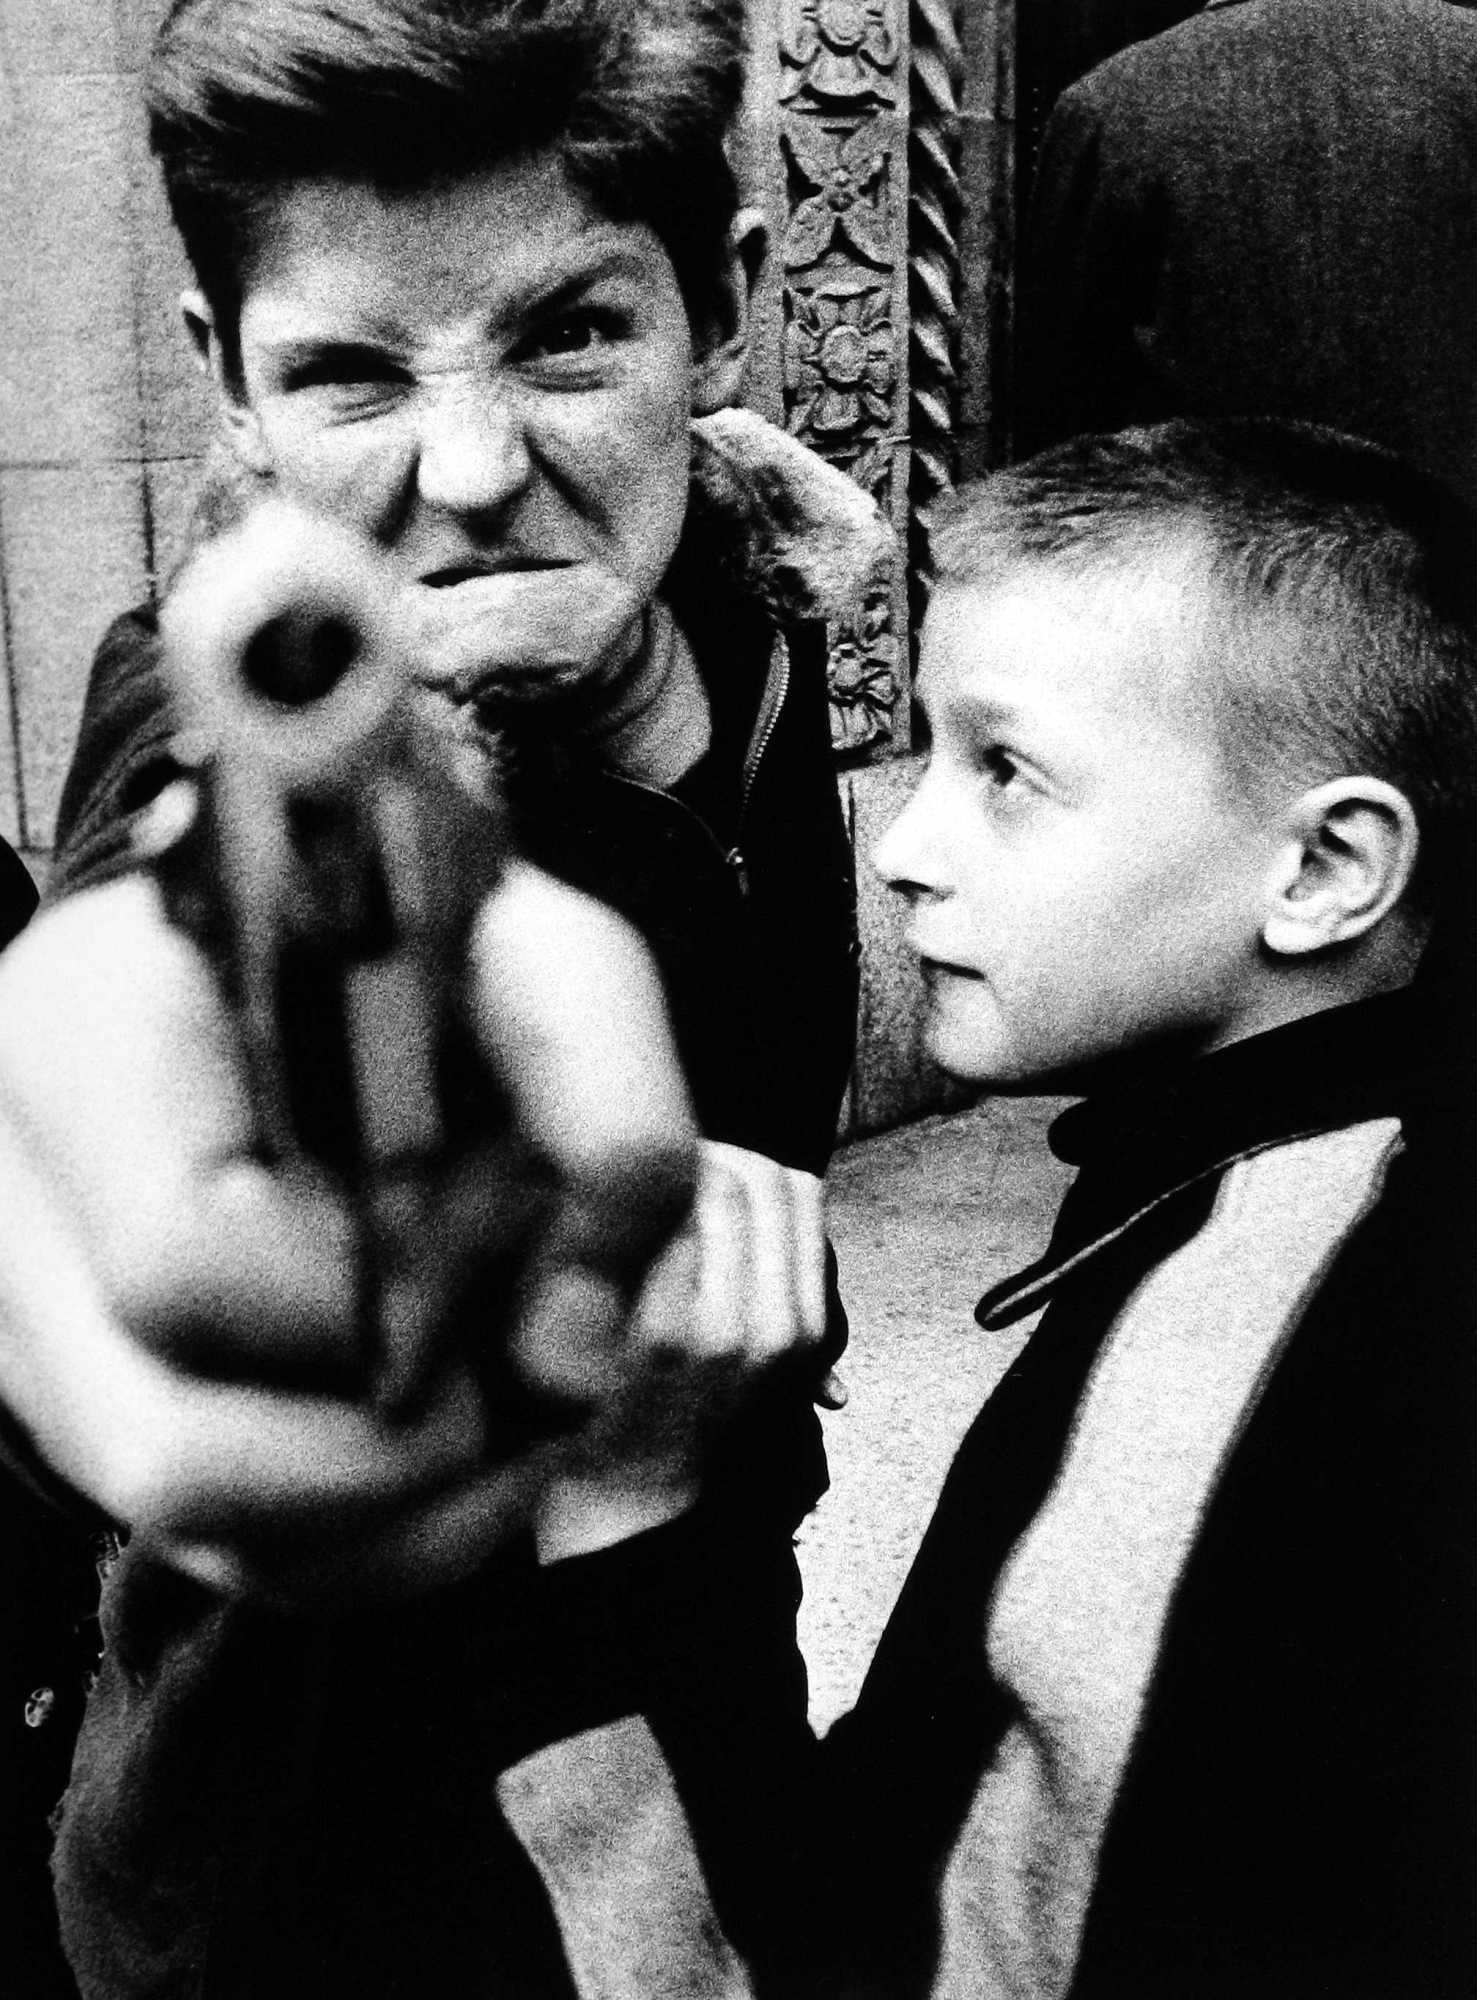 Gun 1, New York, 1955 (c) William Klein